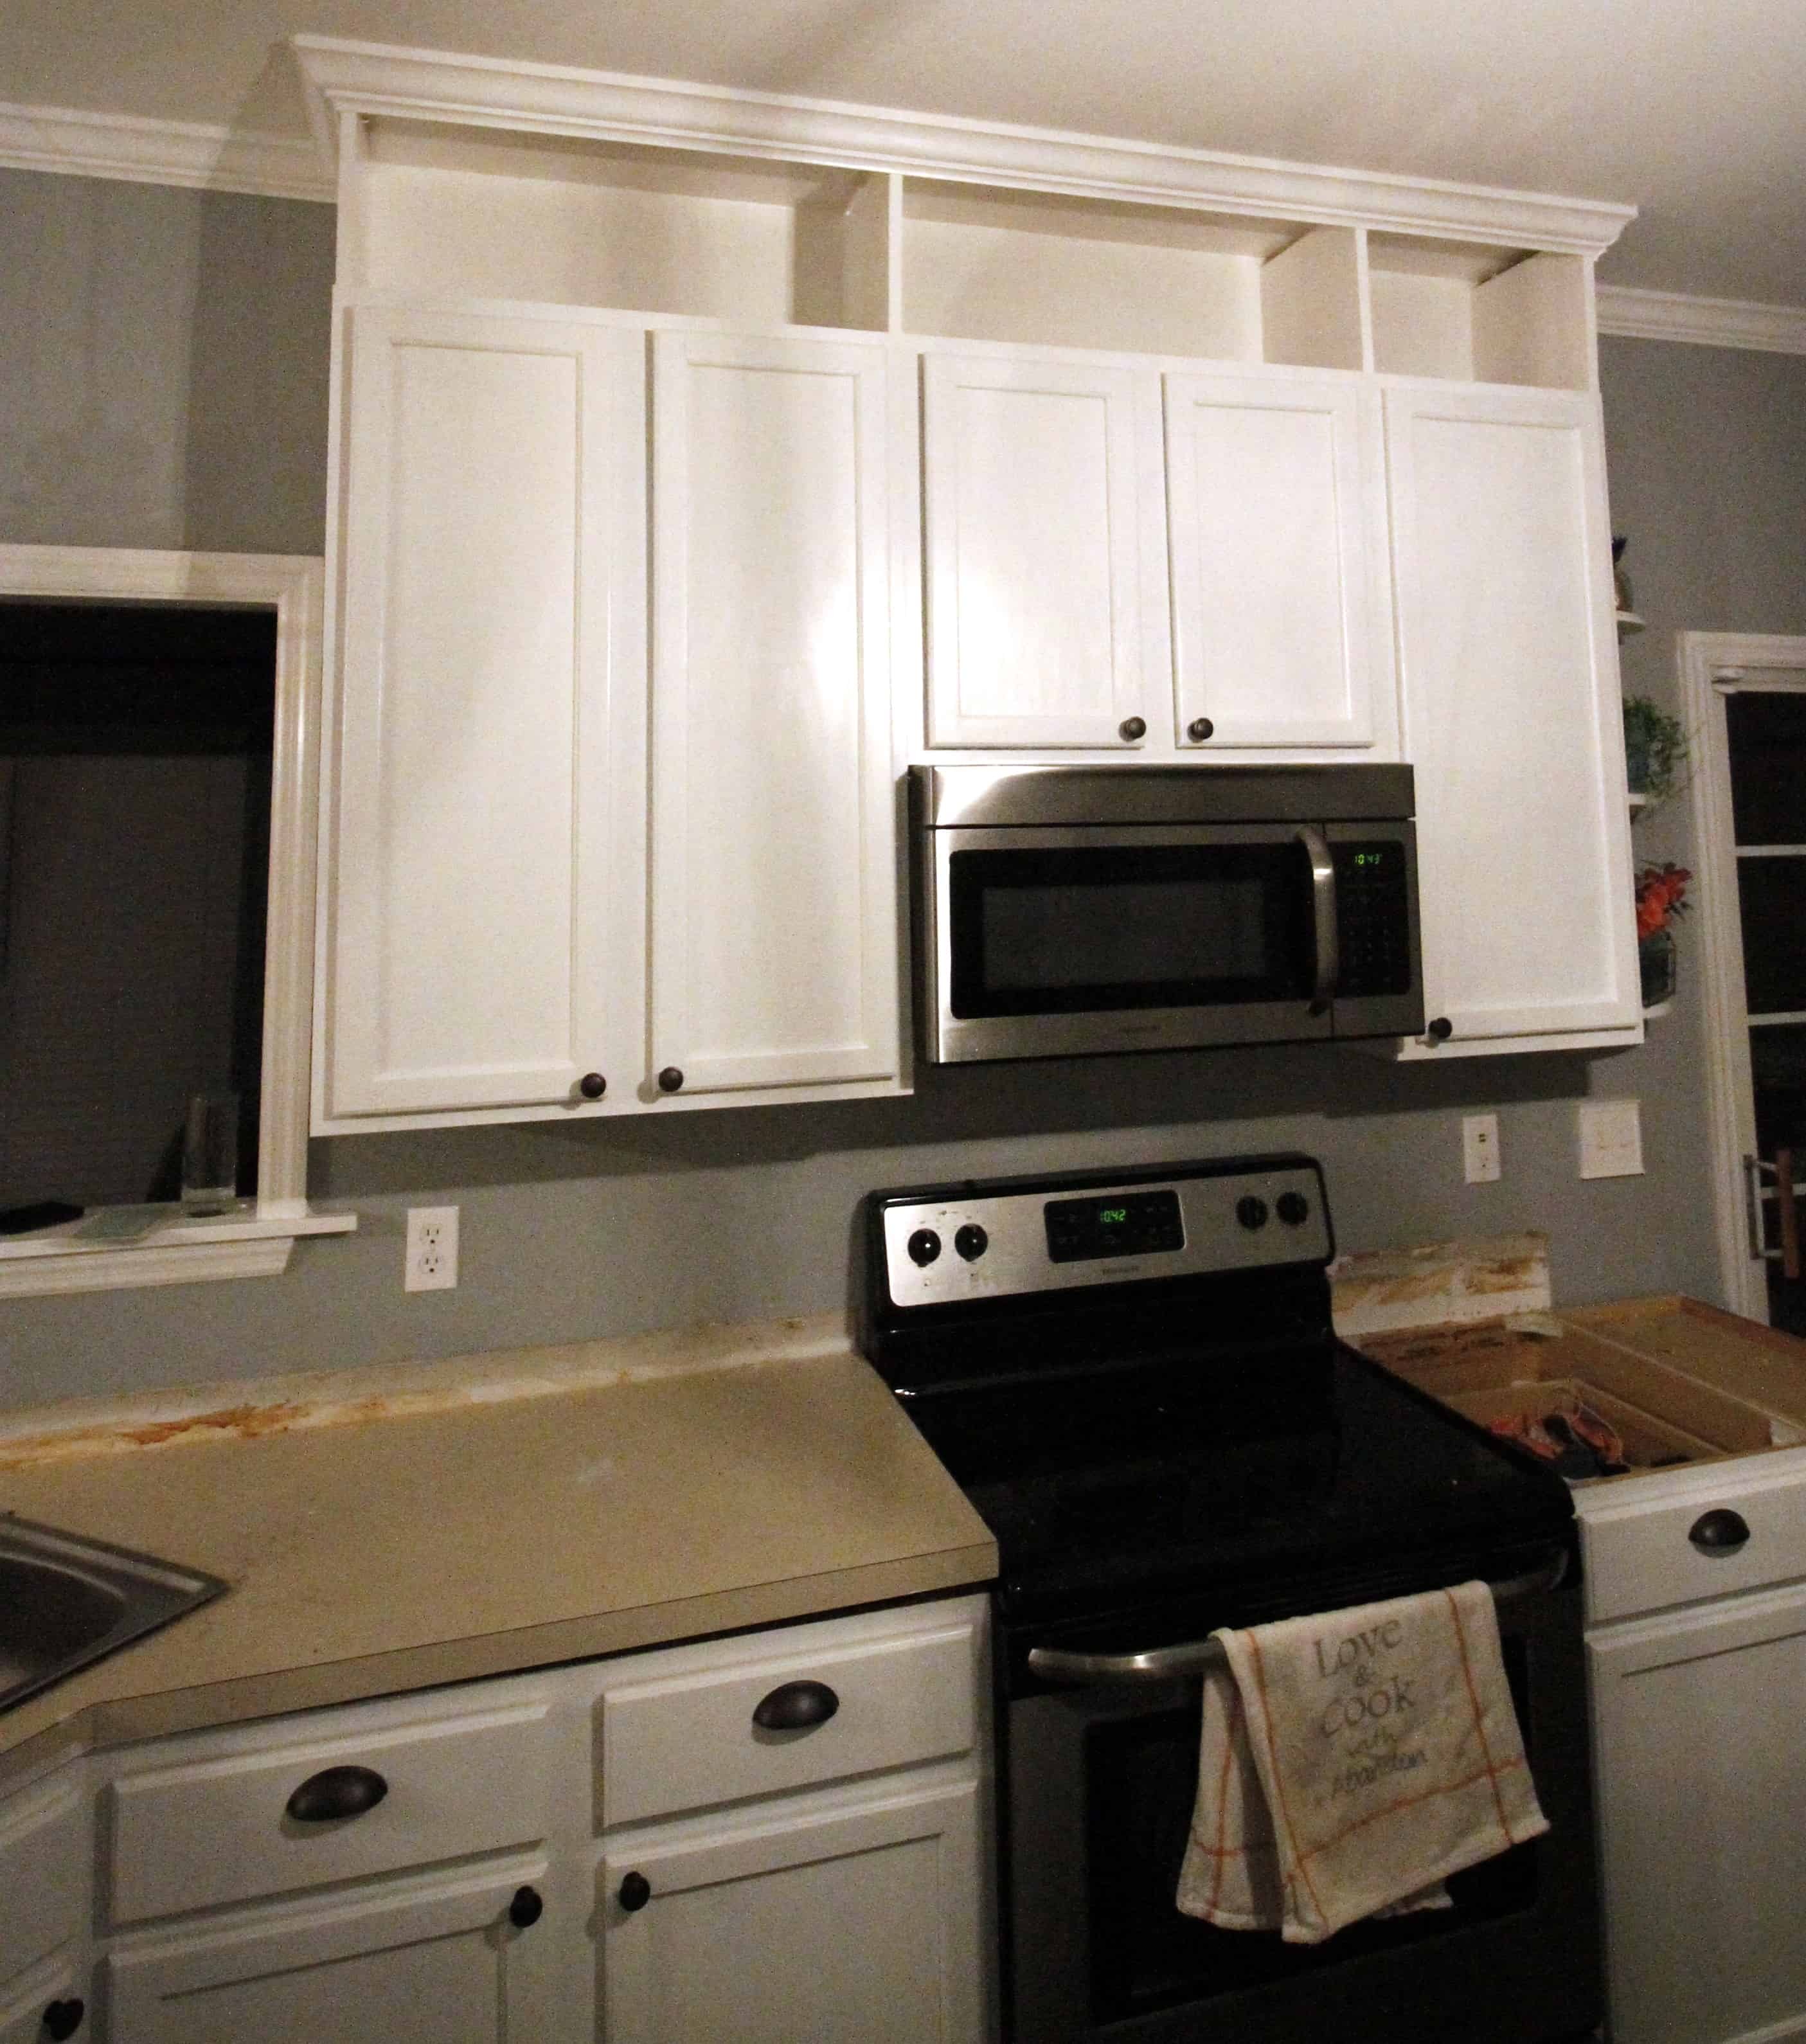 Four Cabinet Extensions To Improve Your Kitchen